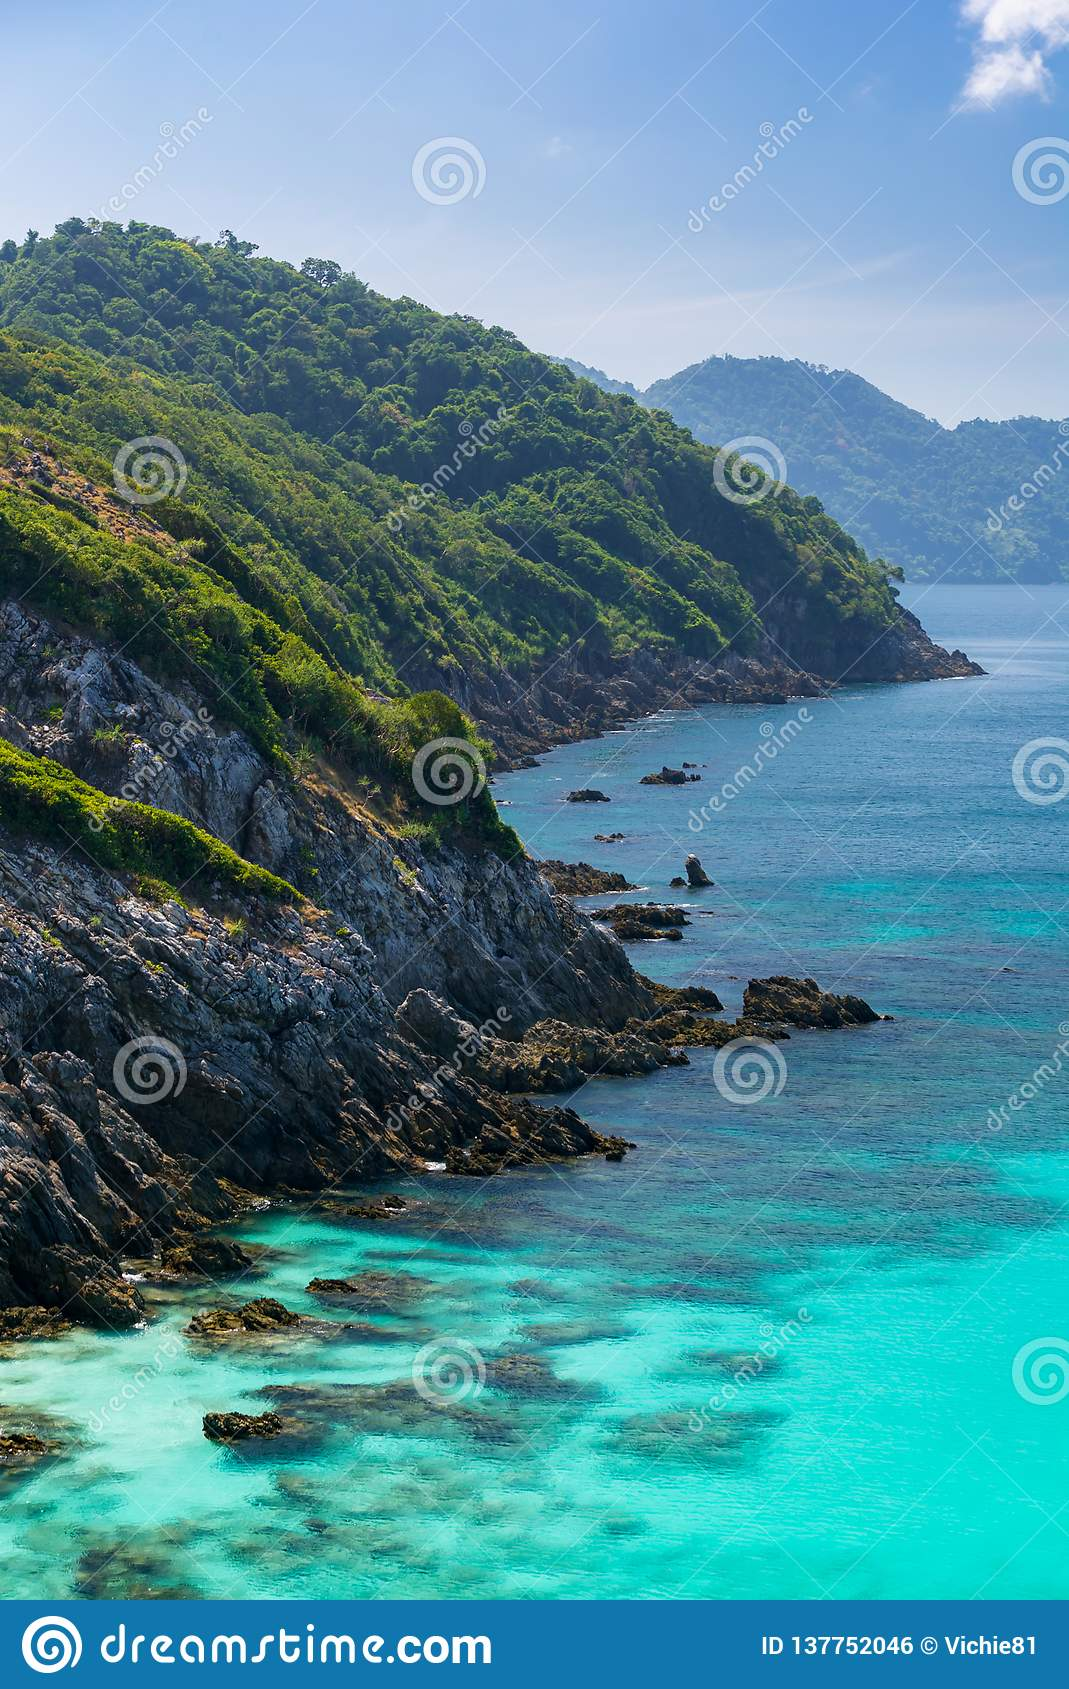 Tropical White Sand Beach Aerial Stock Photo - Image of ...